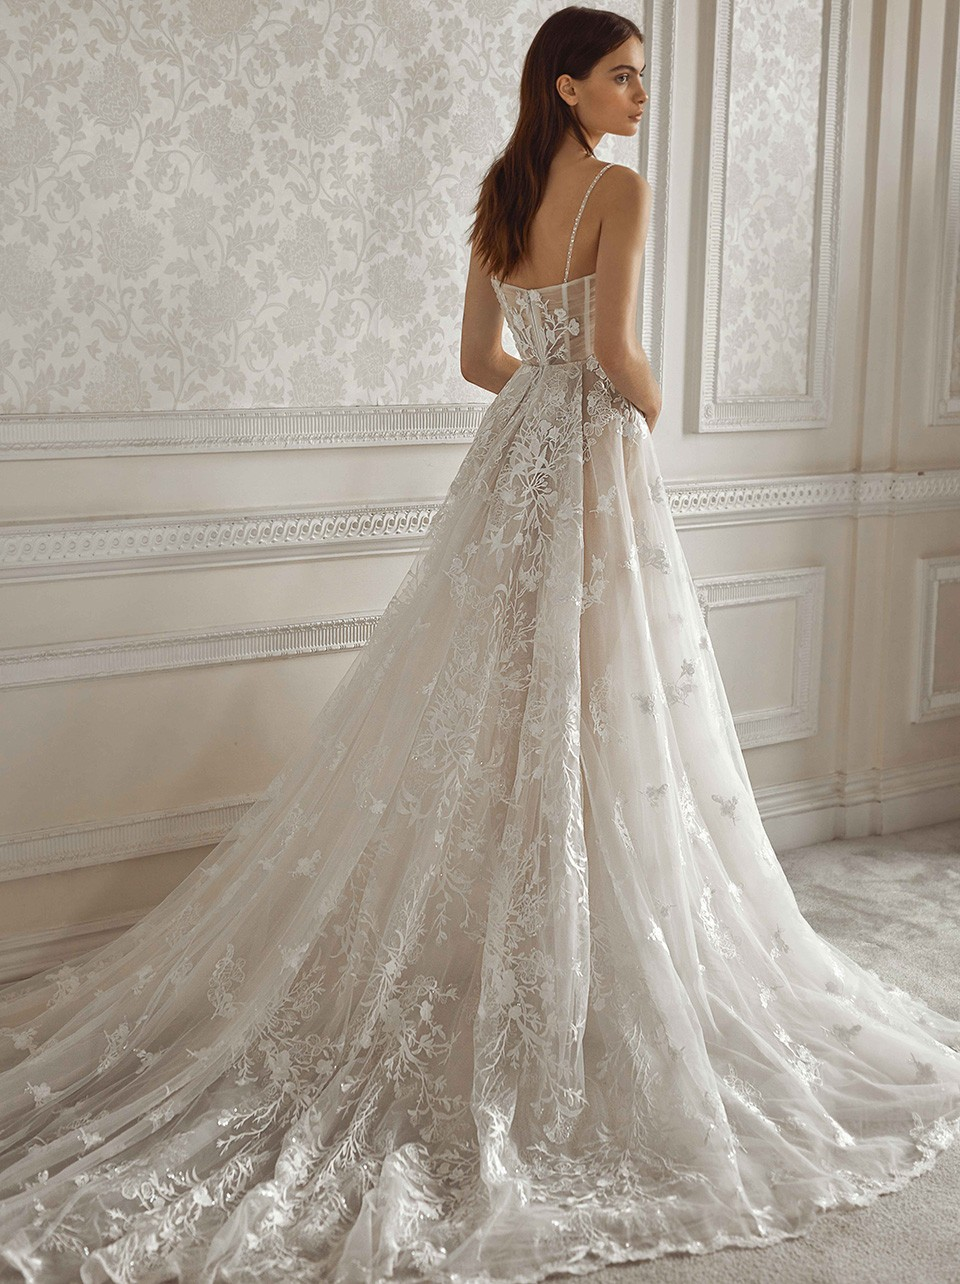 Pavlova Inspirated By Dancing Queen Of Galia Lahav  FW 2021 Bridal Couture